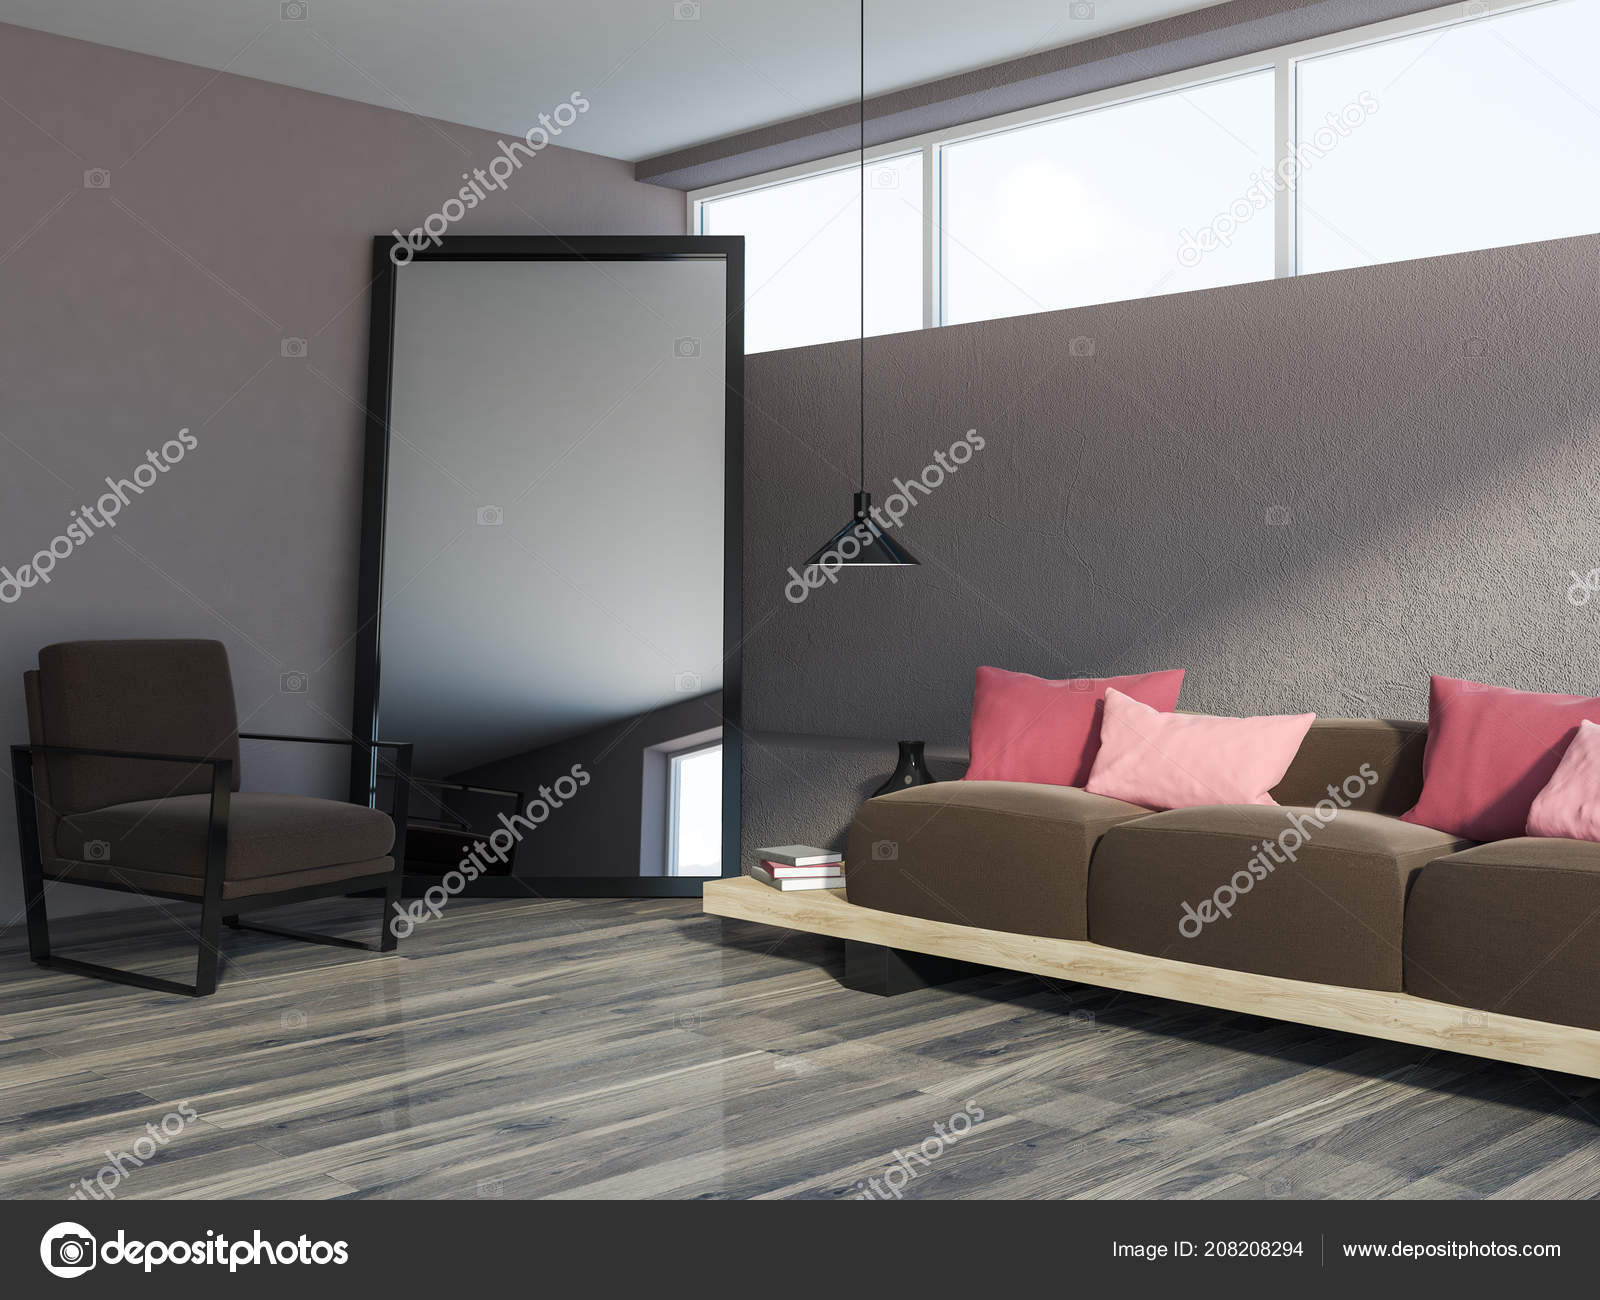 Groovy Dark Brown Wood Floor Living Room Brown Living Room Wooden Gmtry Best Dining Table And Chair Ideas Images Gmtryco